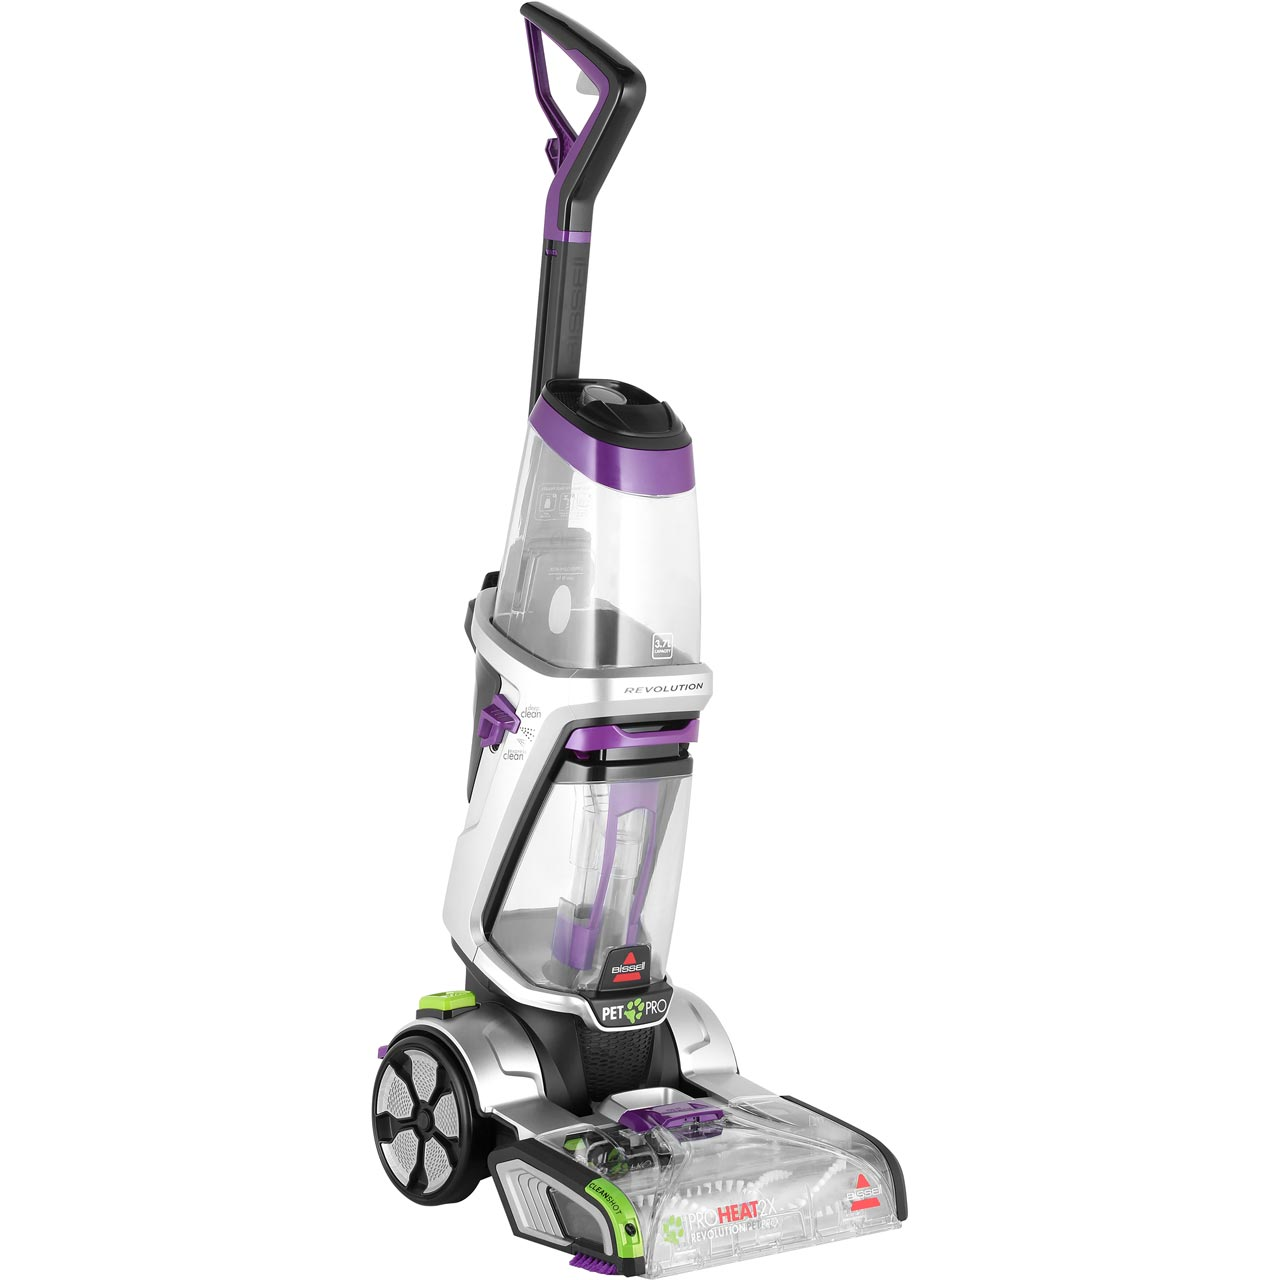 Bissell Revolution 2 0 Pet 20666 Carpet Cleaner Review